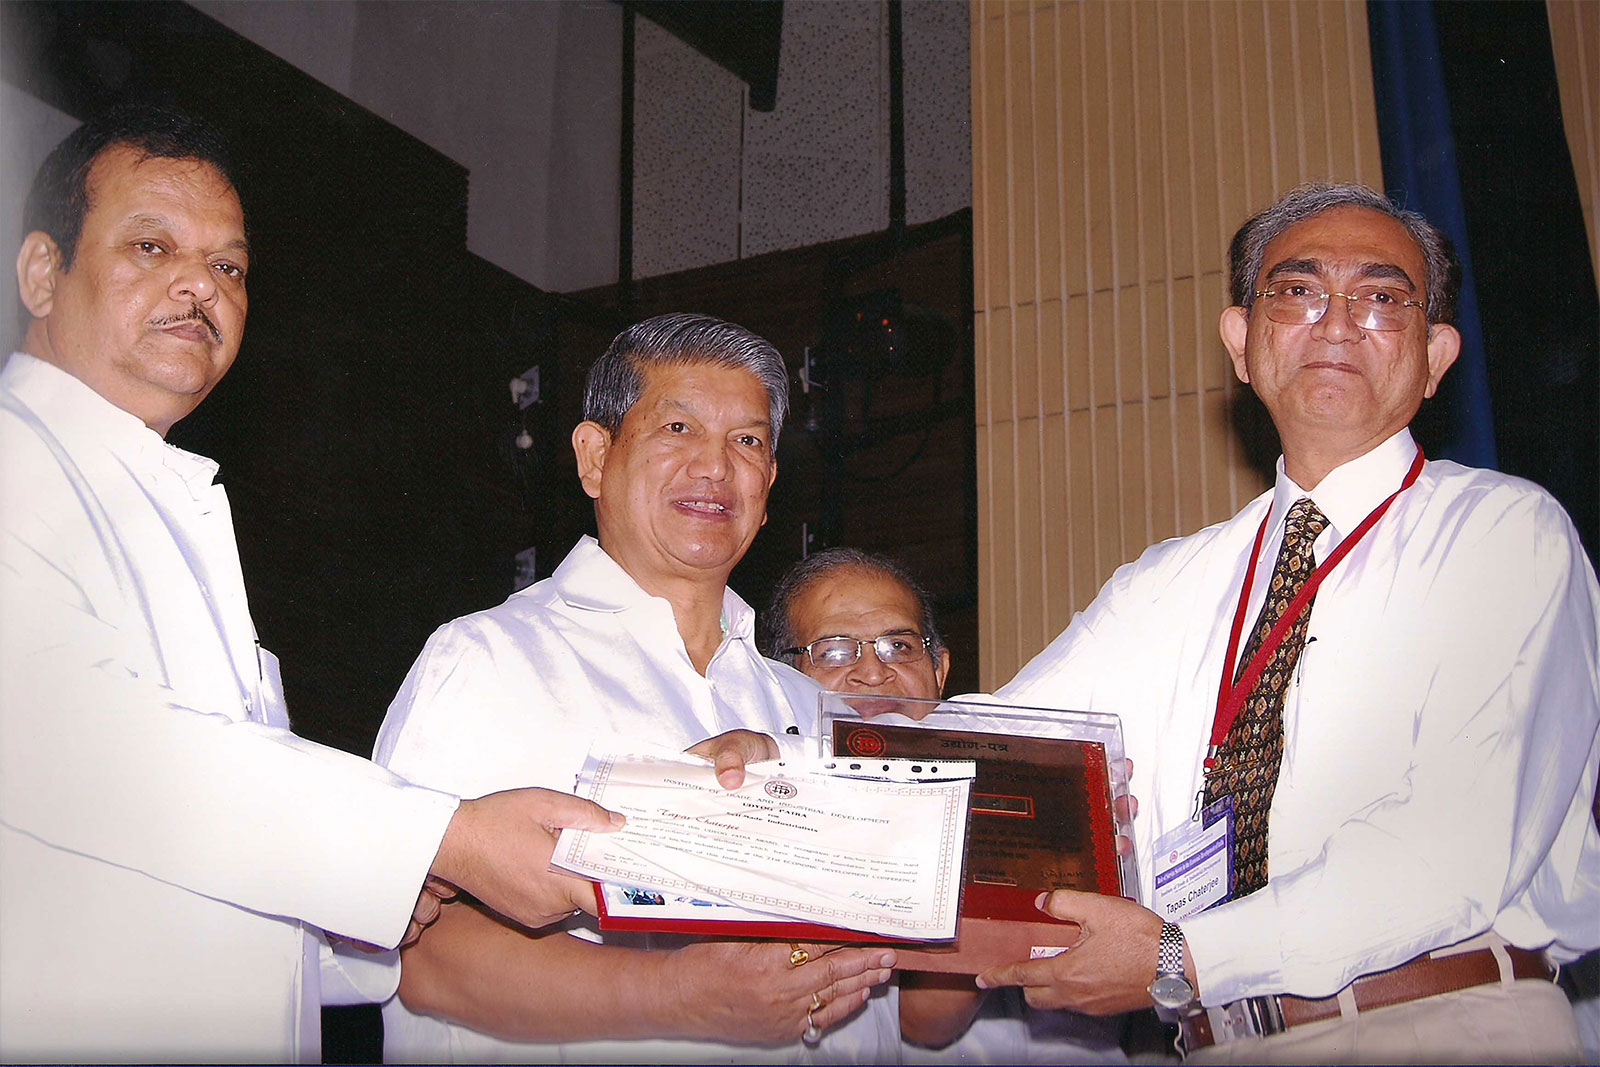 Mr. Tapas Chatterjee received Udyog Patra Award